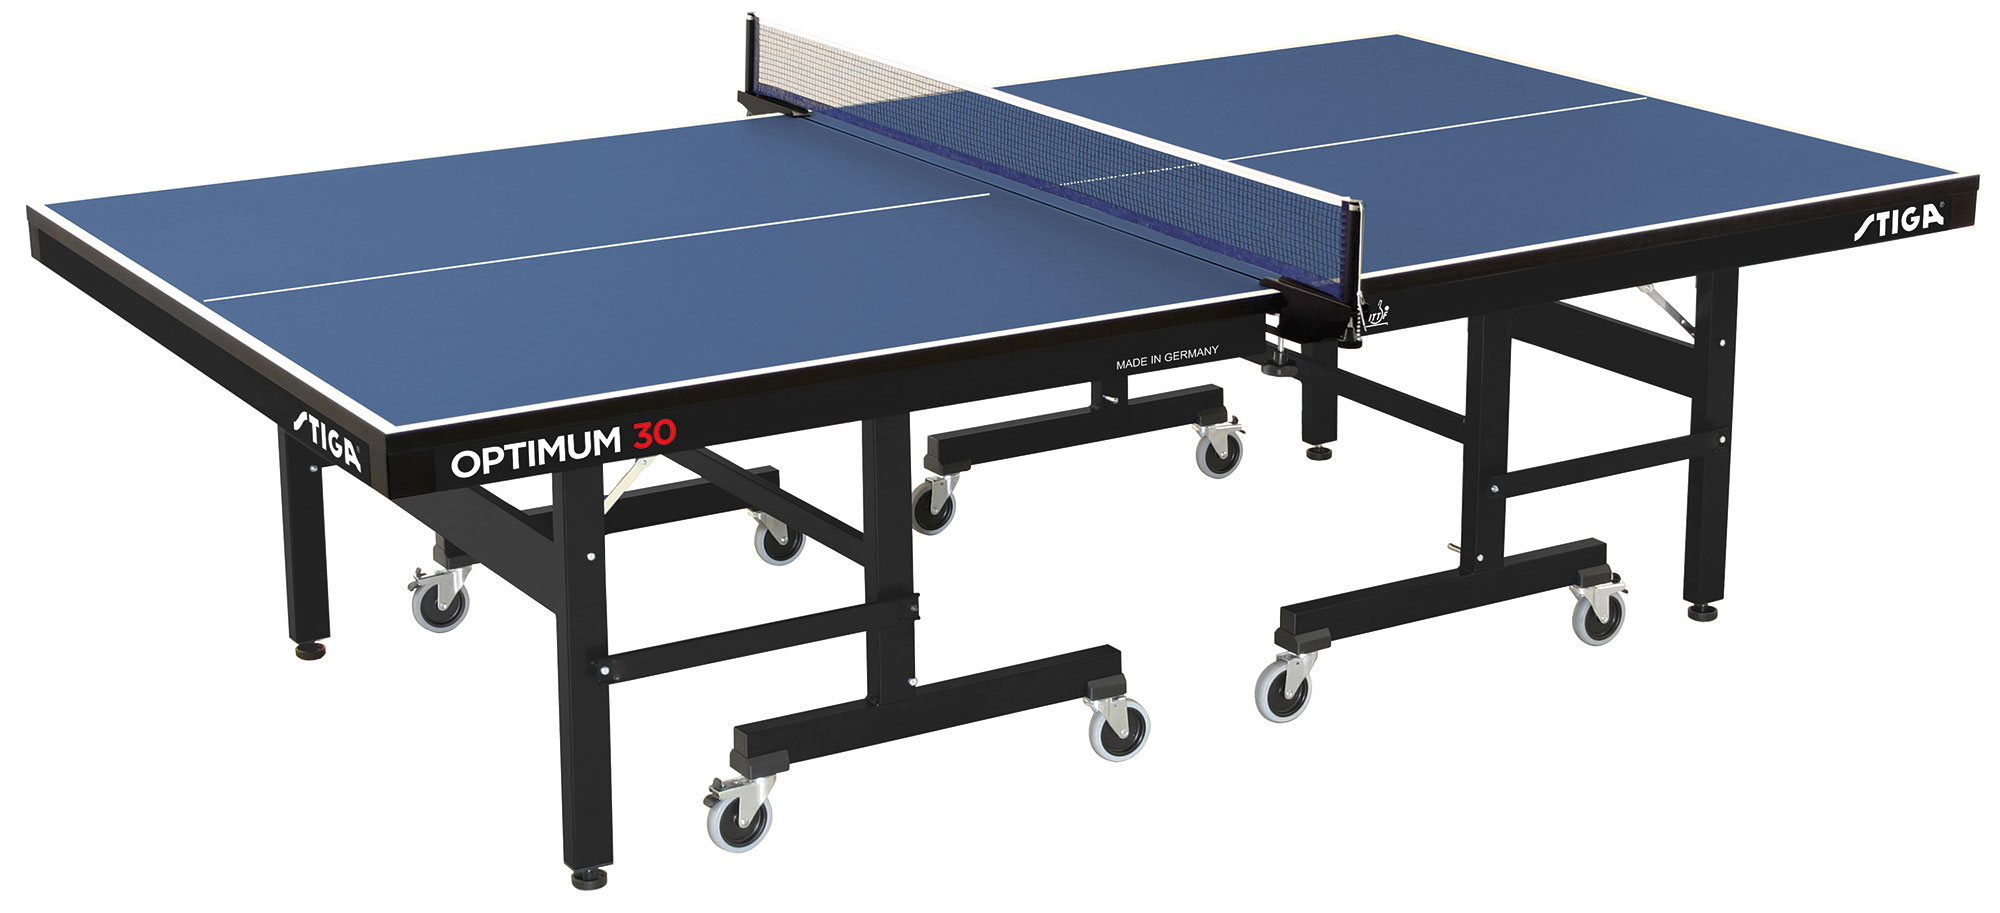 Solde Table De Ping Pong Thorntons Table Tennistable Tennis Table Stiga Optimum